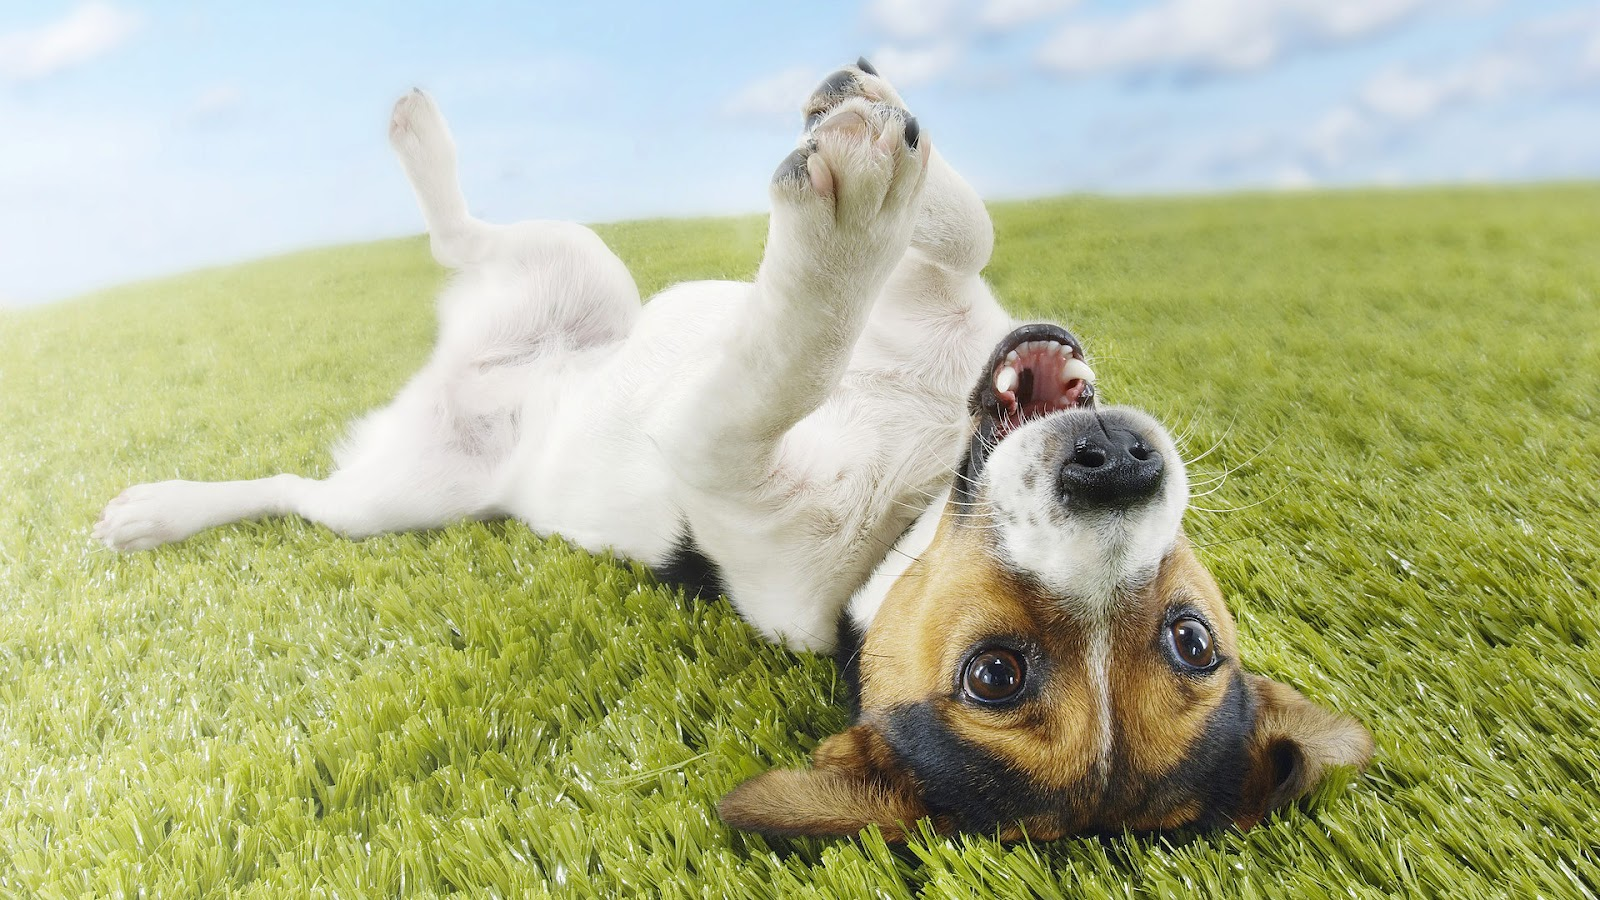 Hd wallpaper dog - Photo Funny Dog On His Back On The Grass